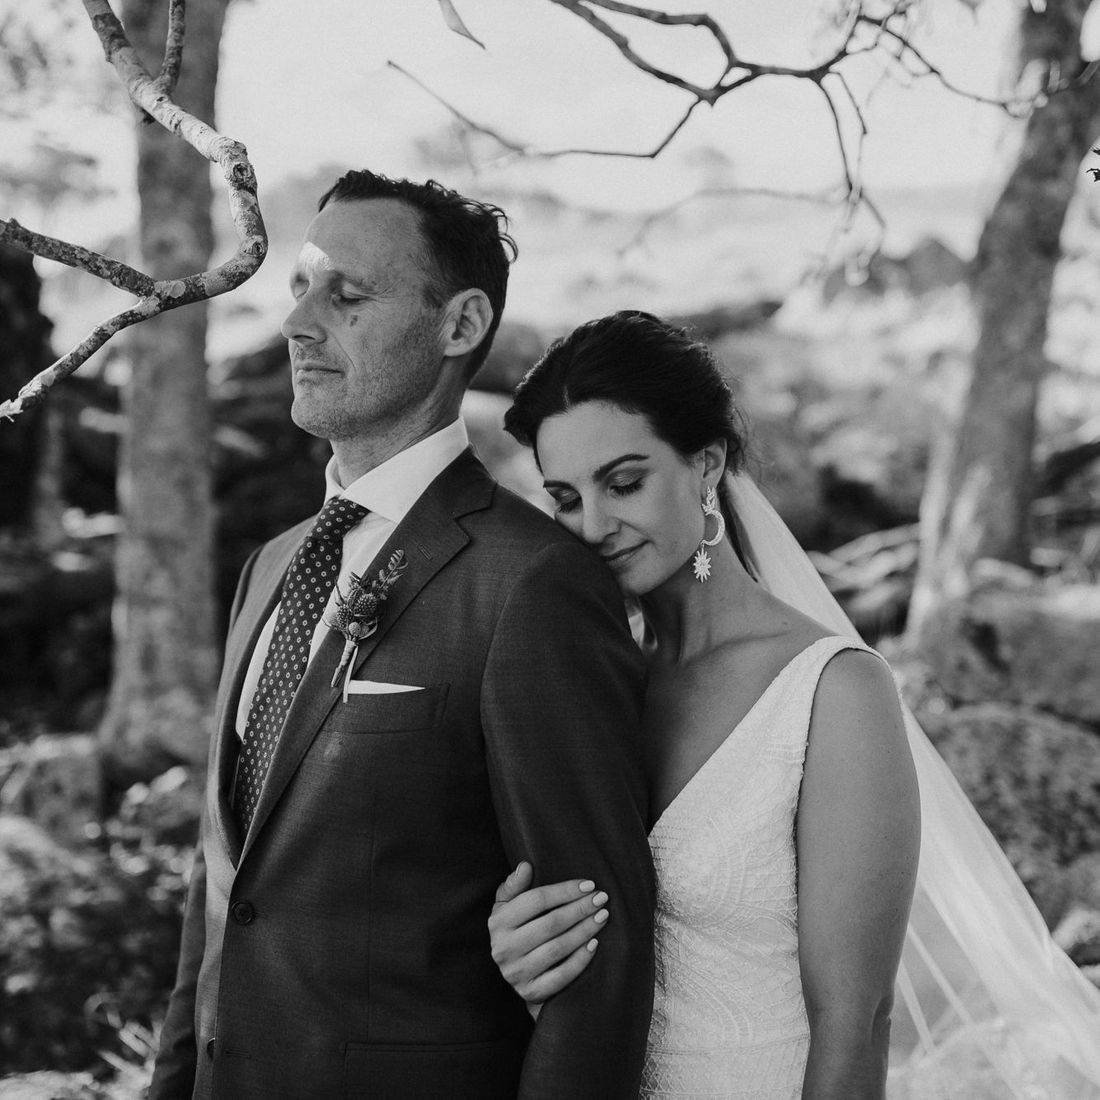 Ashleigh and Matt's Verandahs wedding